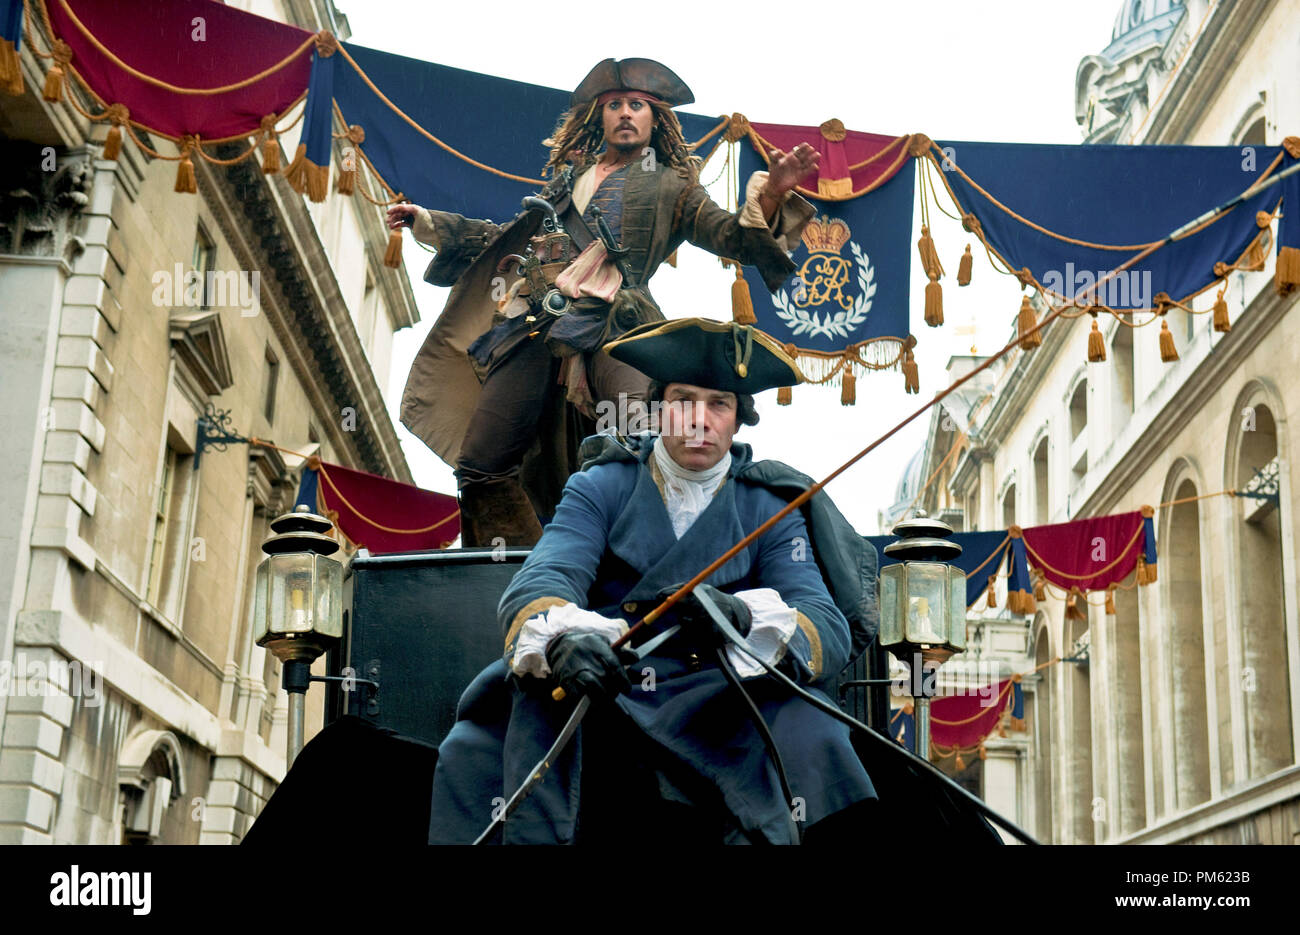 'PIRATES OF THE CARIBBEAN: ON STRANGER TIDES' Captain Jack (JOHNNY DEPP) escapes from the clutches of King George and his Royal Guards by leaping from carriage to carriageÉwhile theyÕre still moving! - Stock Image